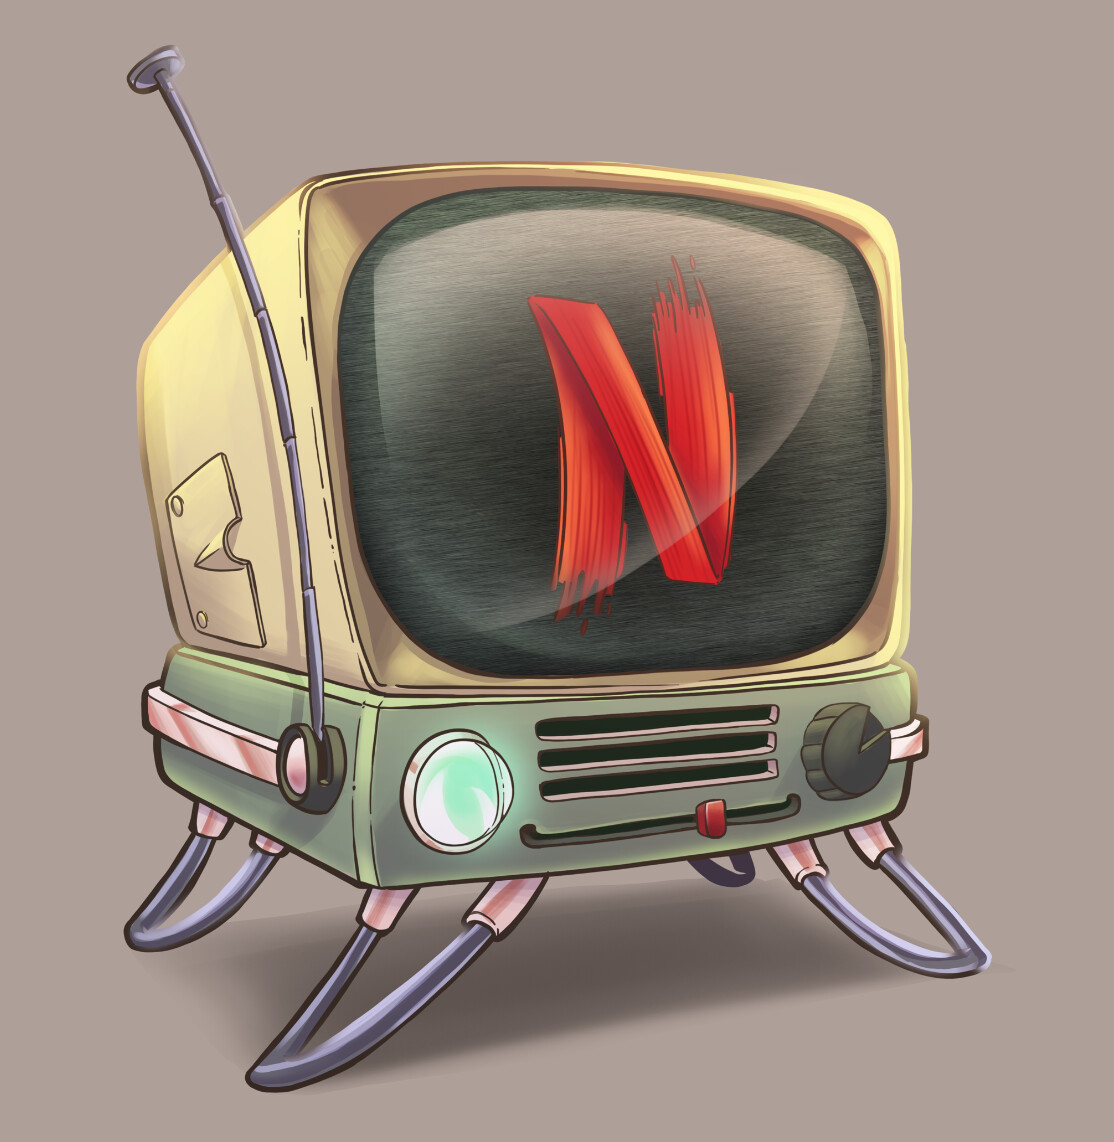 This one is just a study of what it would look like to have a vintage TV set with Netflix... I like the colours, so it went on to the final image.